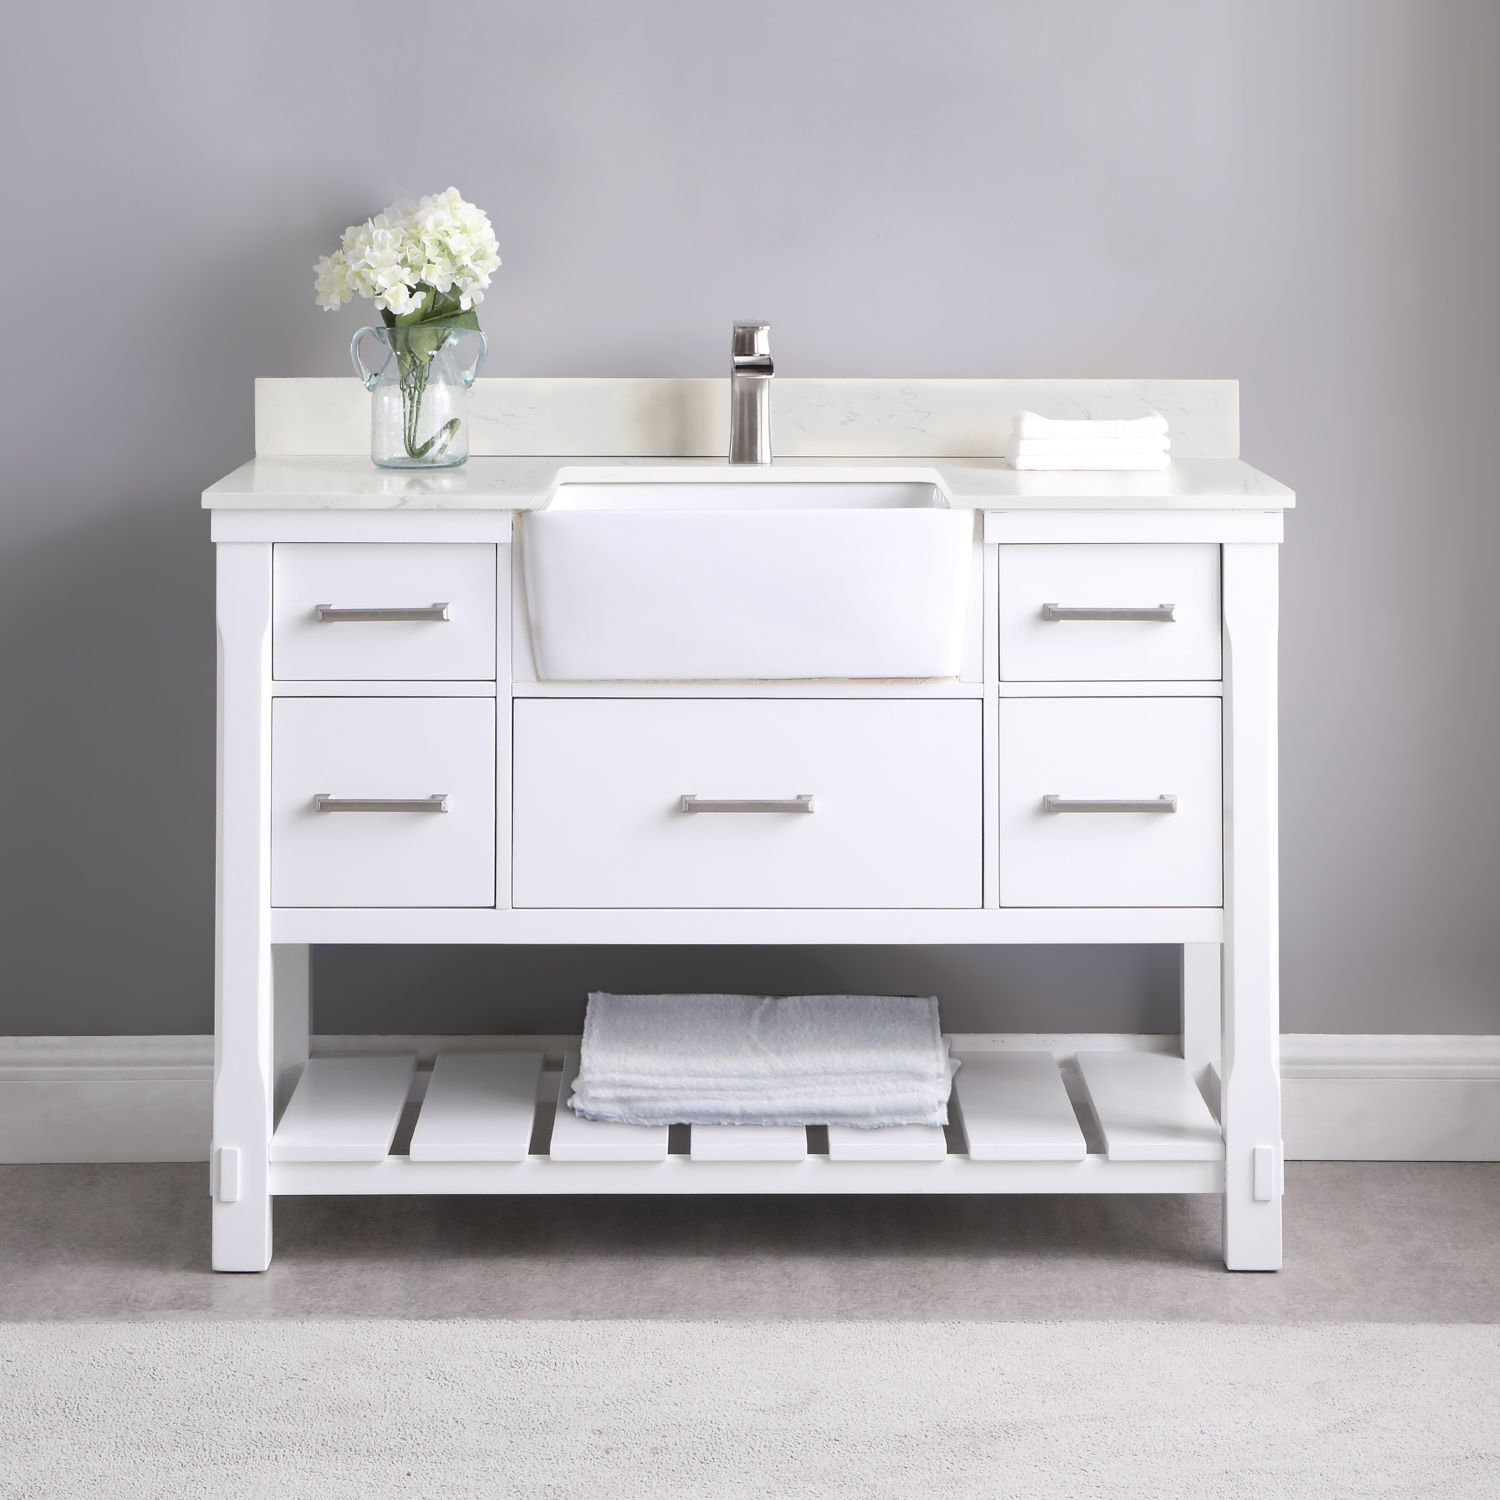 "Issac Edwards Collection 48"" Single Bathroom Vanity Set in White and Composite Carrara White Stone Top with White Farmhouse Basin without Mirror"